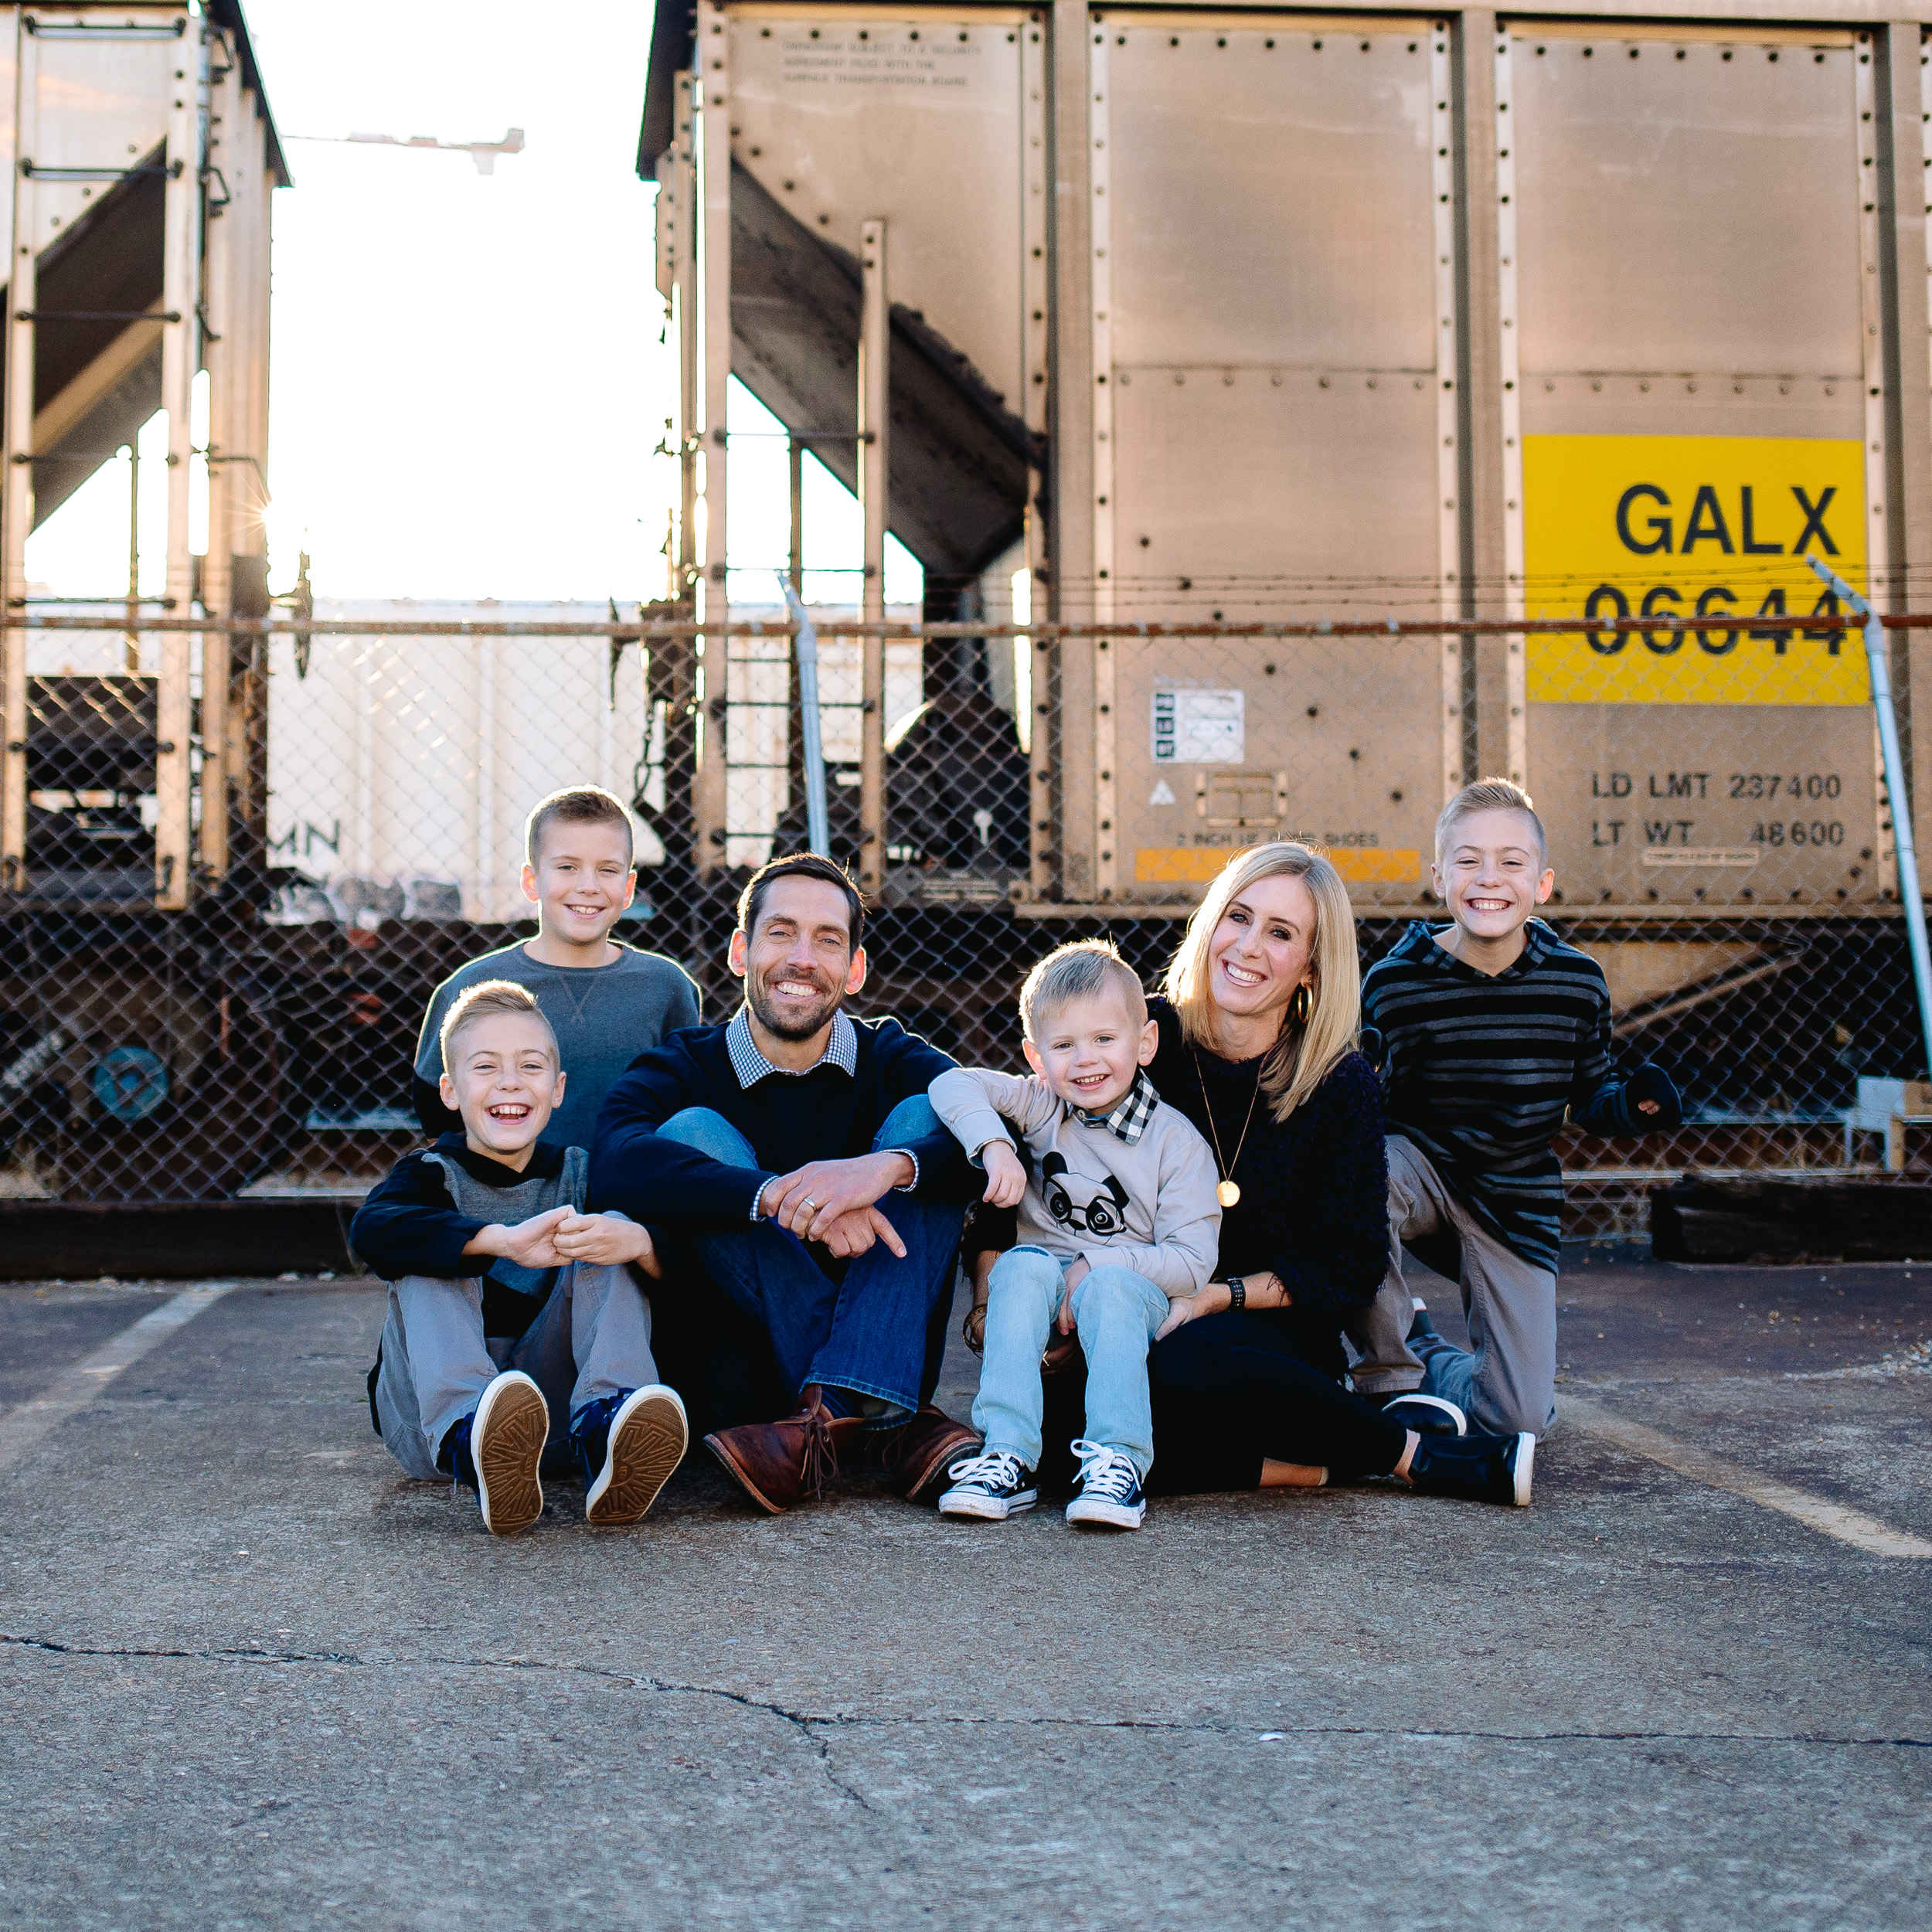 FAMILY OF SIX ATUNION STATION HOTEL -